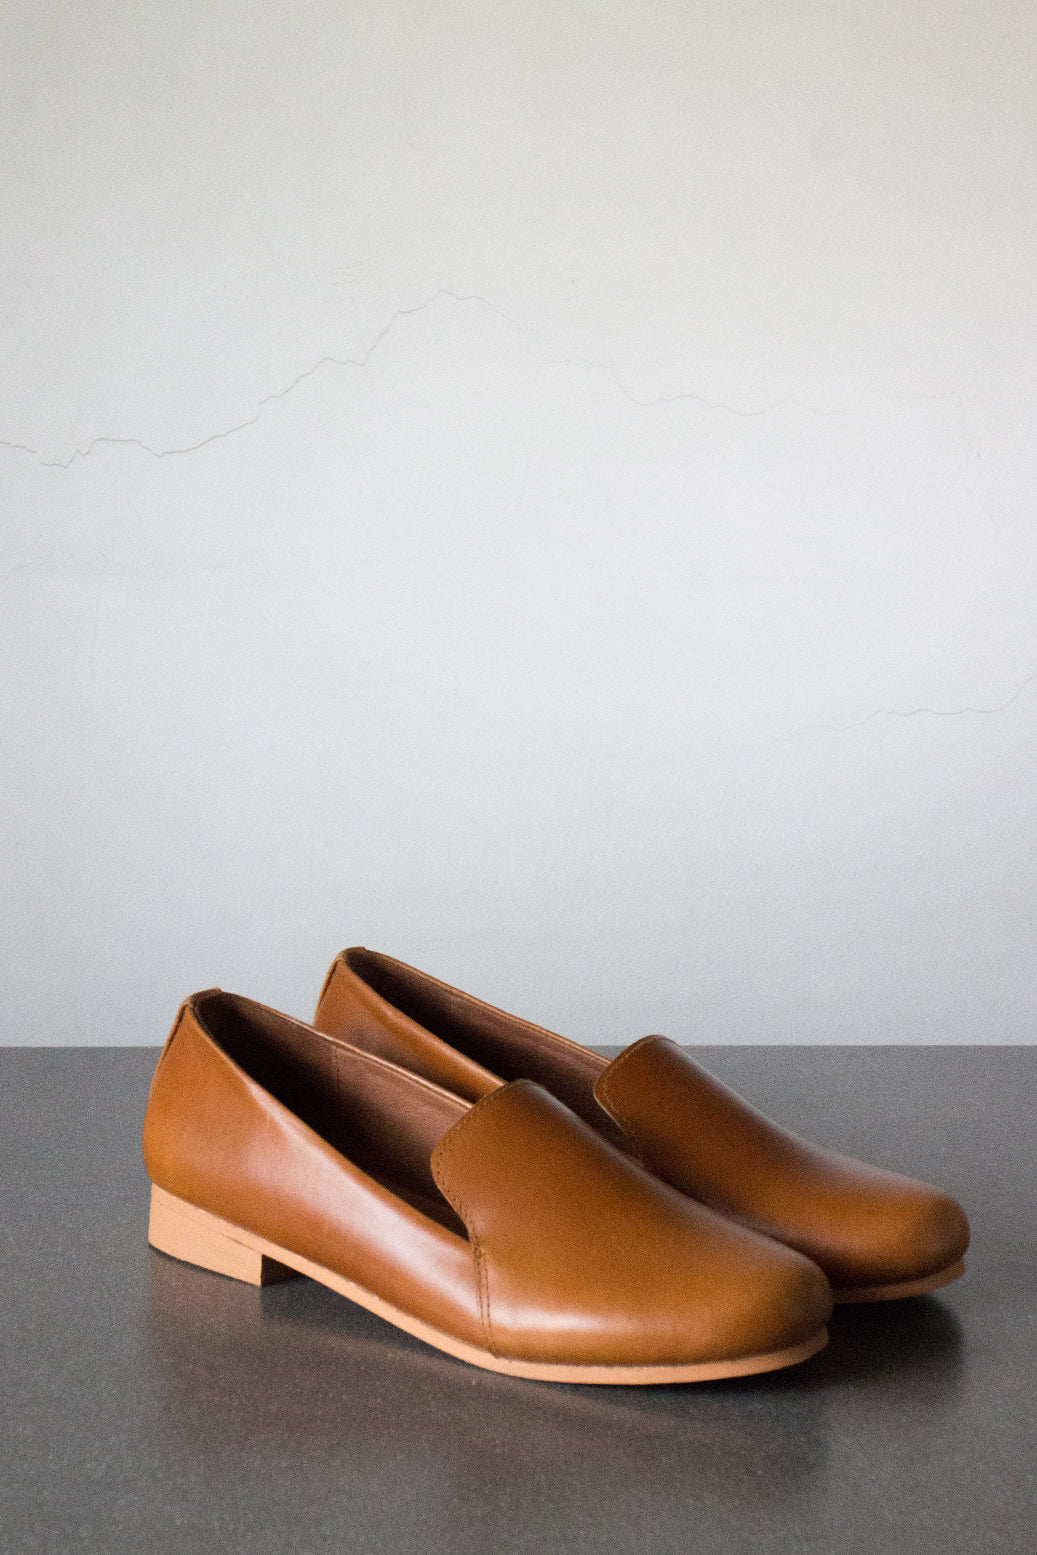 The Smoking Loafer in Tan - andanté, loafers - loafers, loafers leather footwear